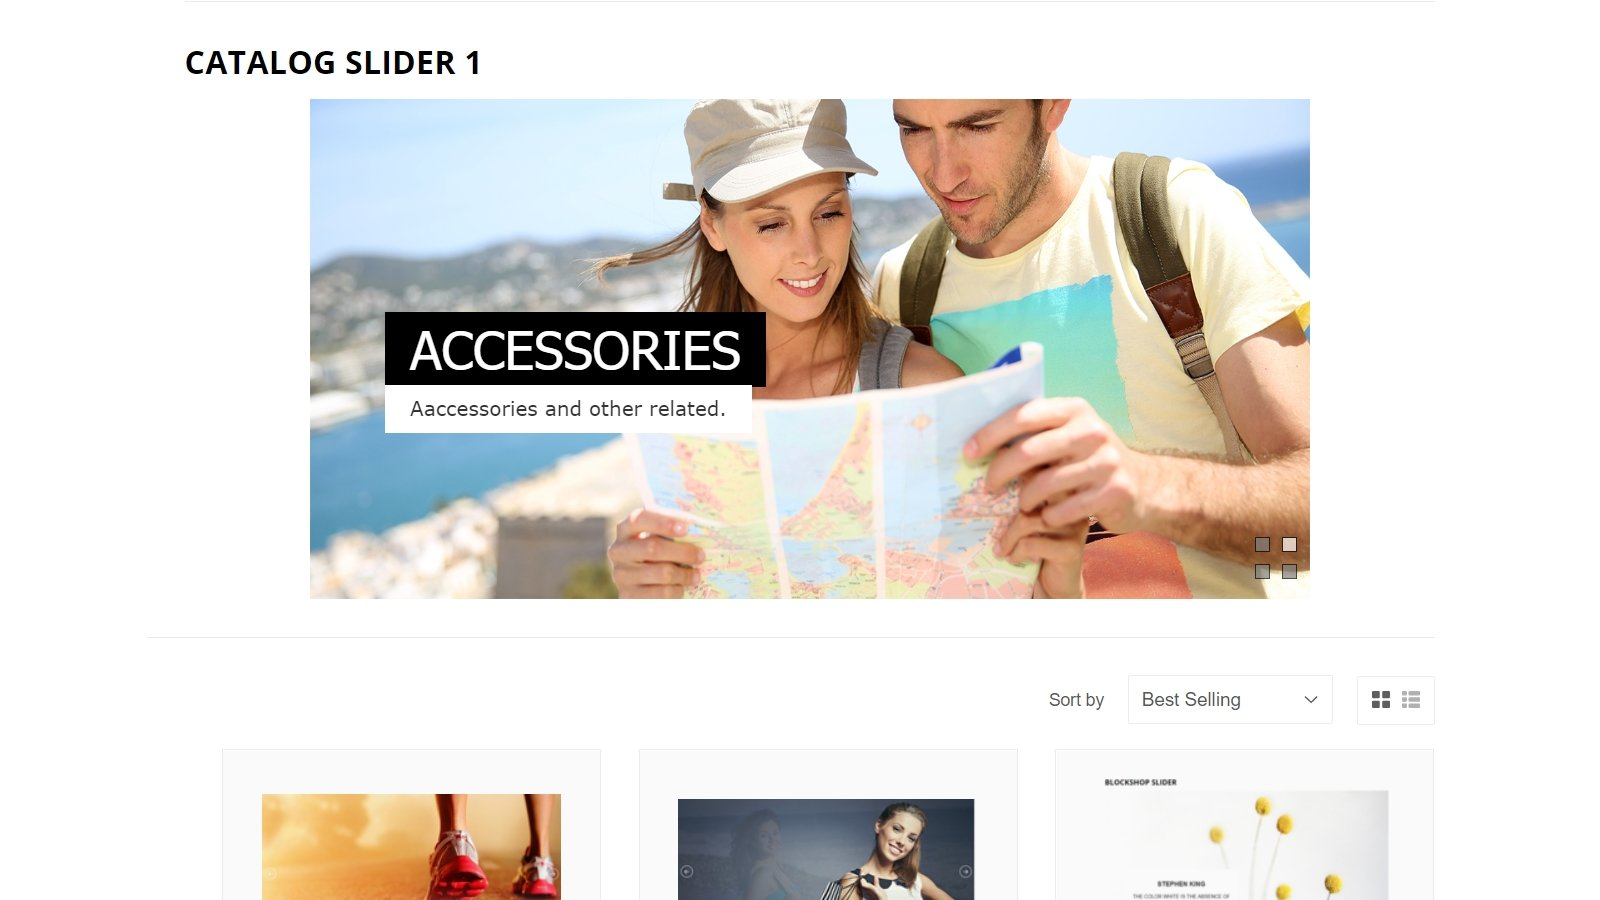 shopify banner slider app by Secomapp - Catalog Slider 1